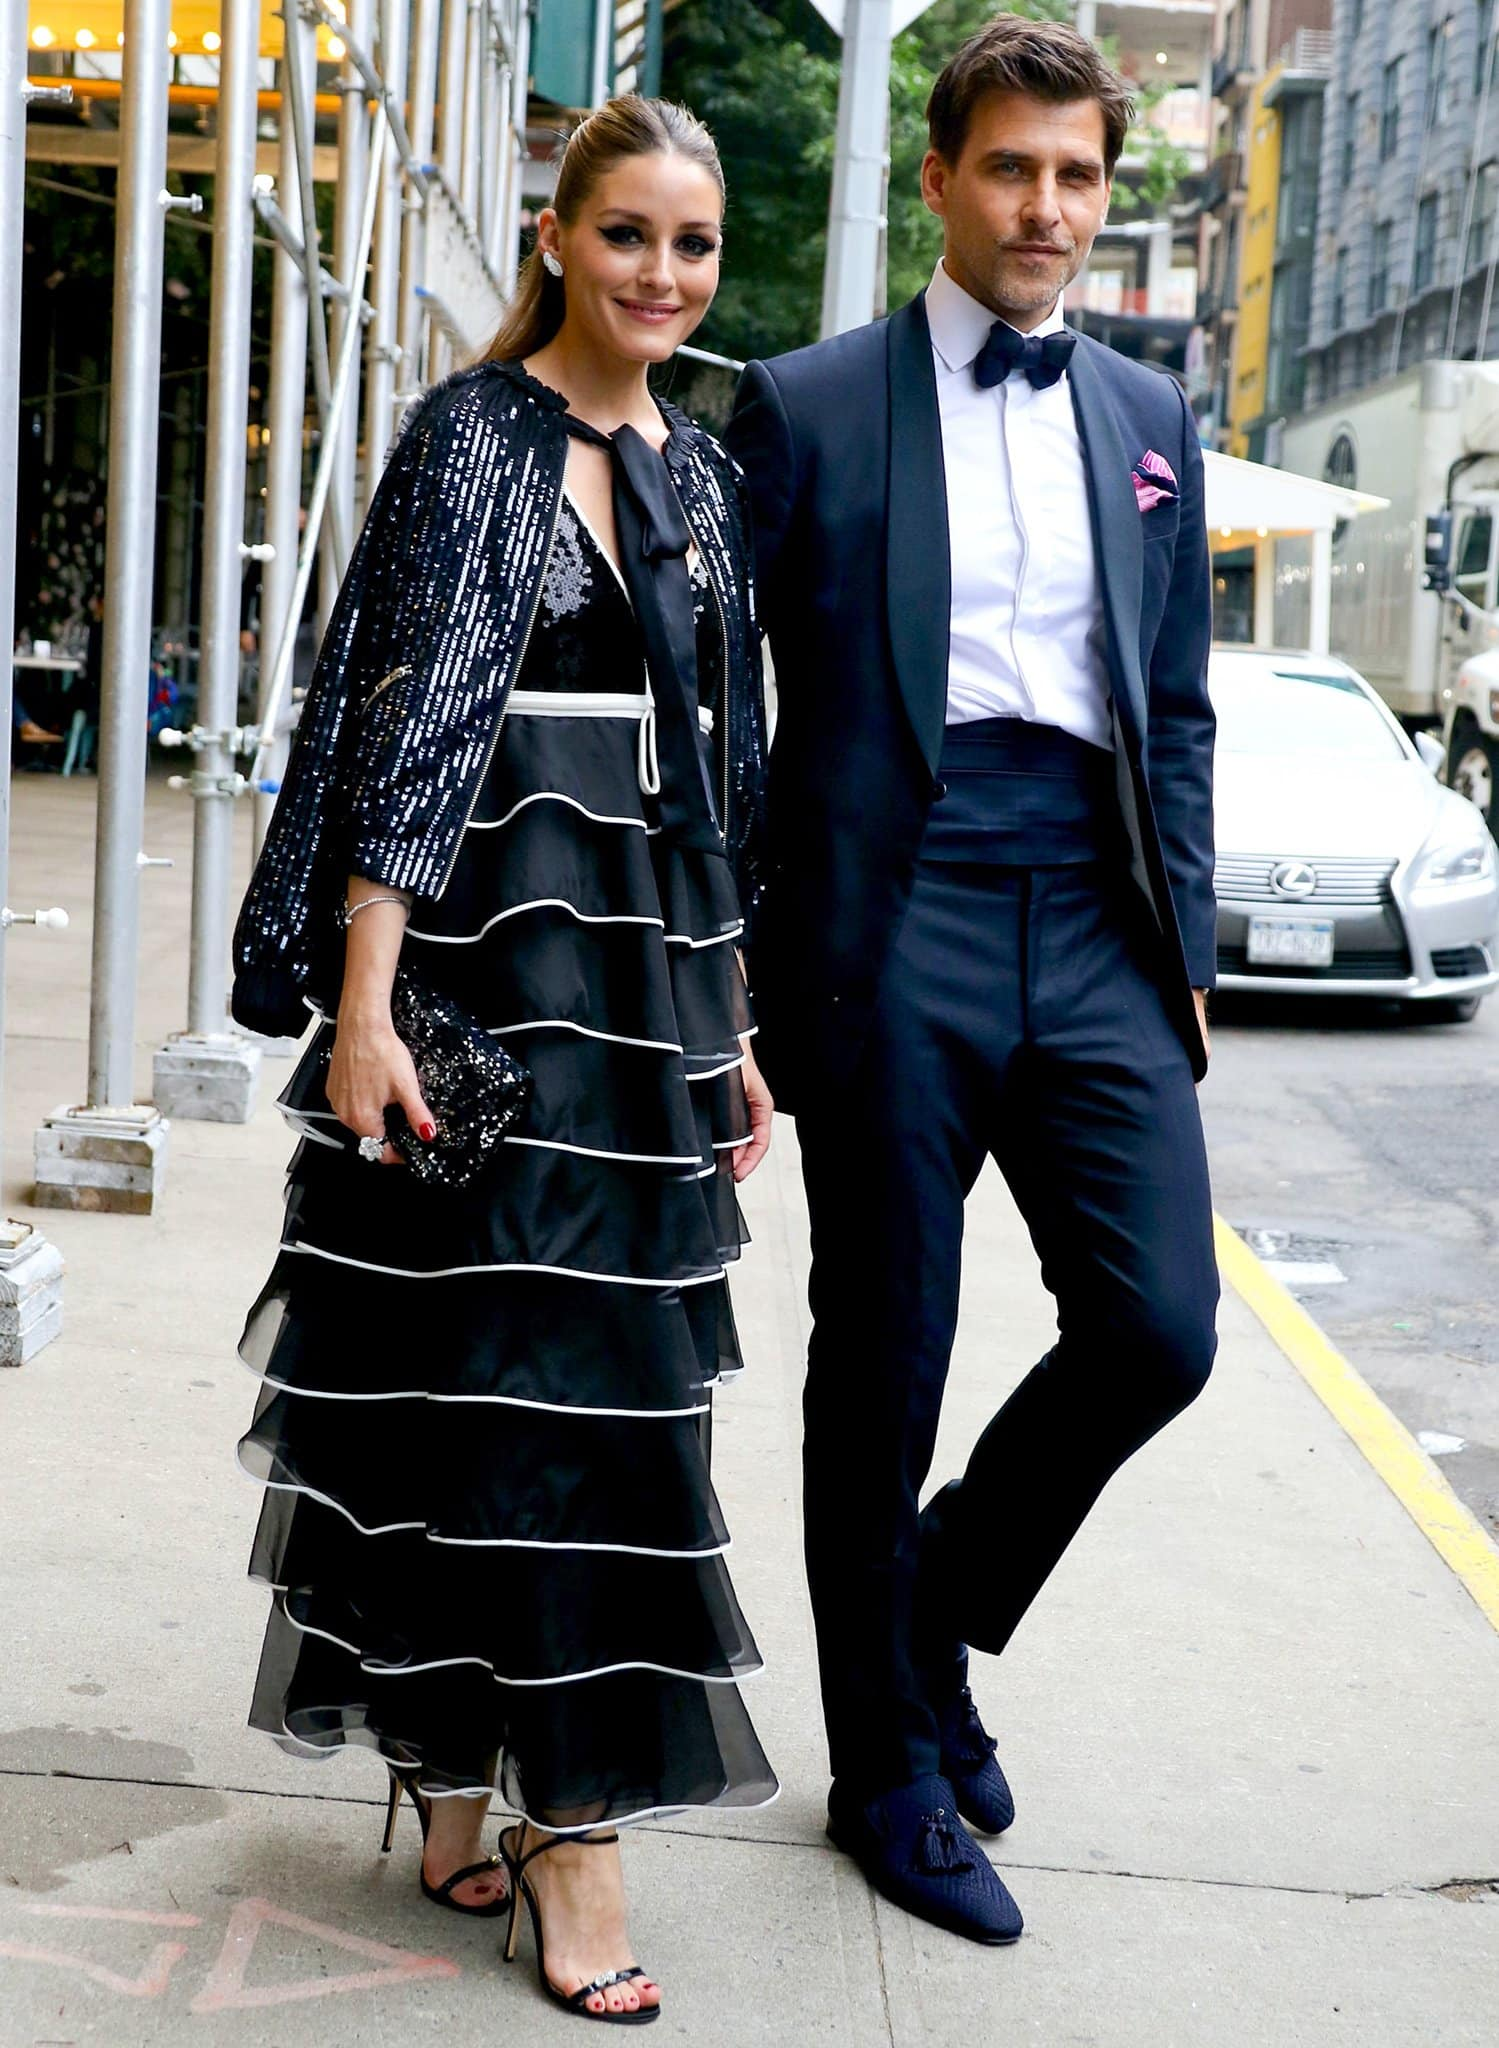 Olivia Palermo stuns in a Giambattista Valli tiered ruffled dress and a sequined jacket while Johannes Huebl looks handsome in a black suit with a bowtie